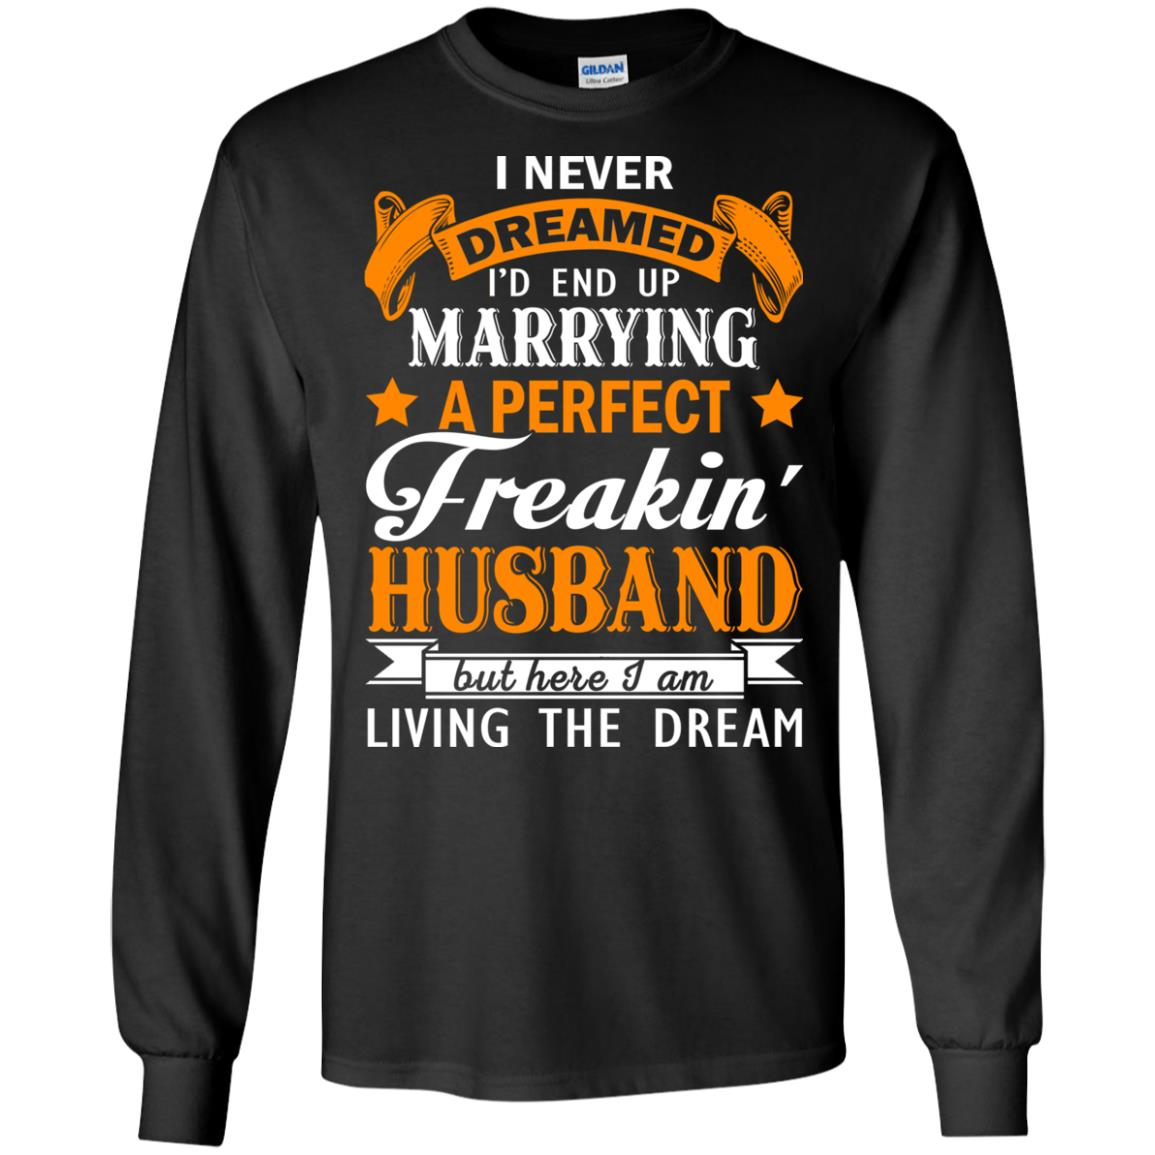 image 1842px I never dreamed I'd end up marrying a perfect freaking husband t shirts, hoodies, tank